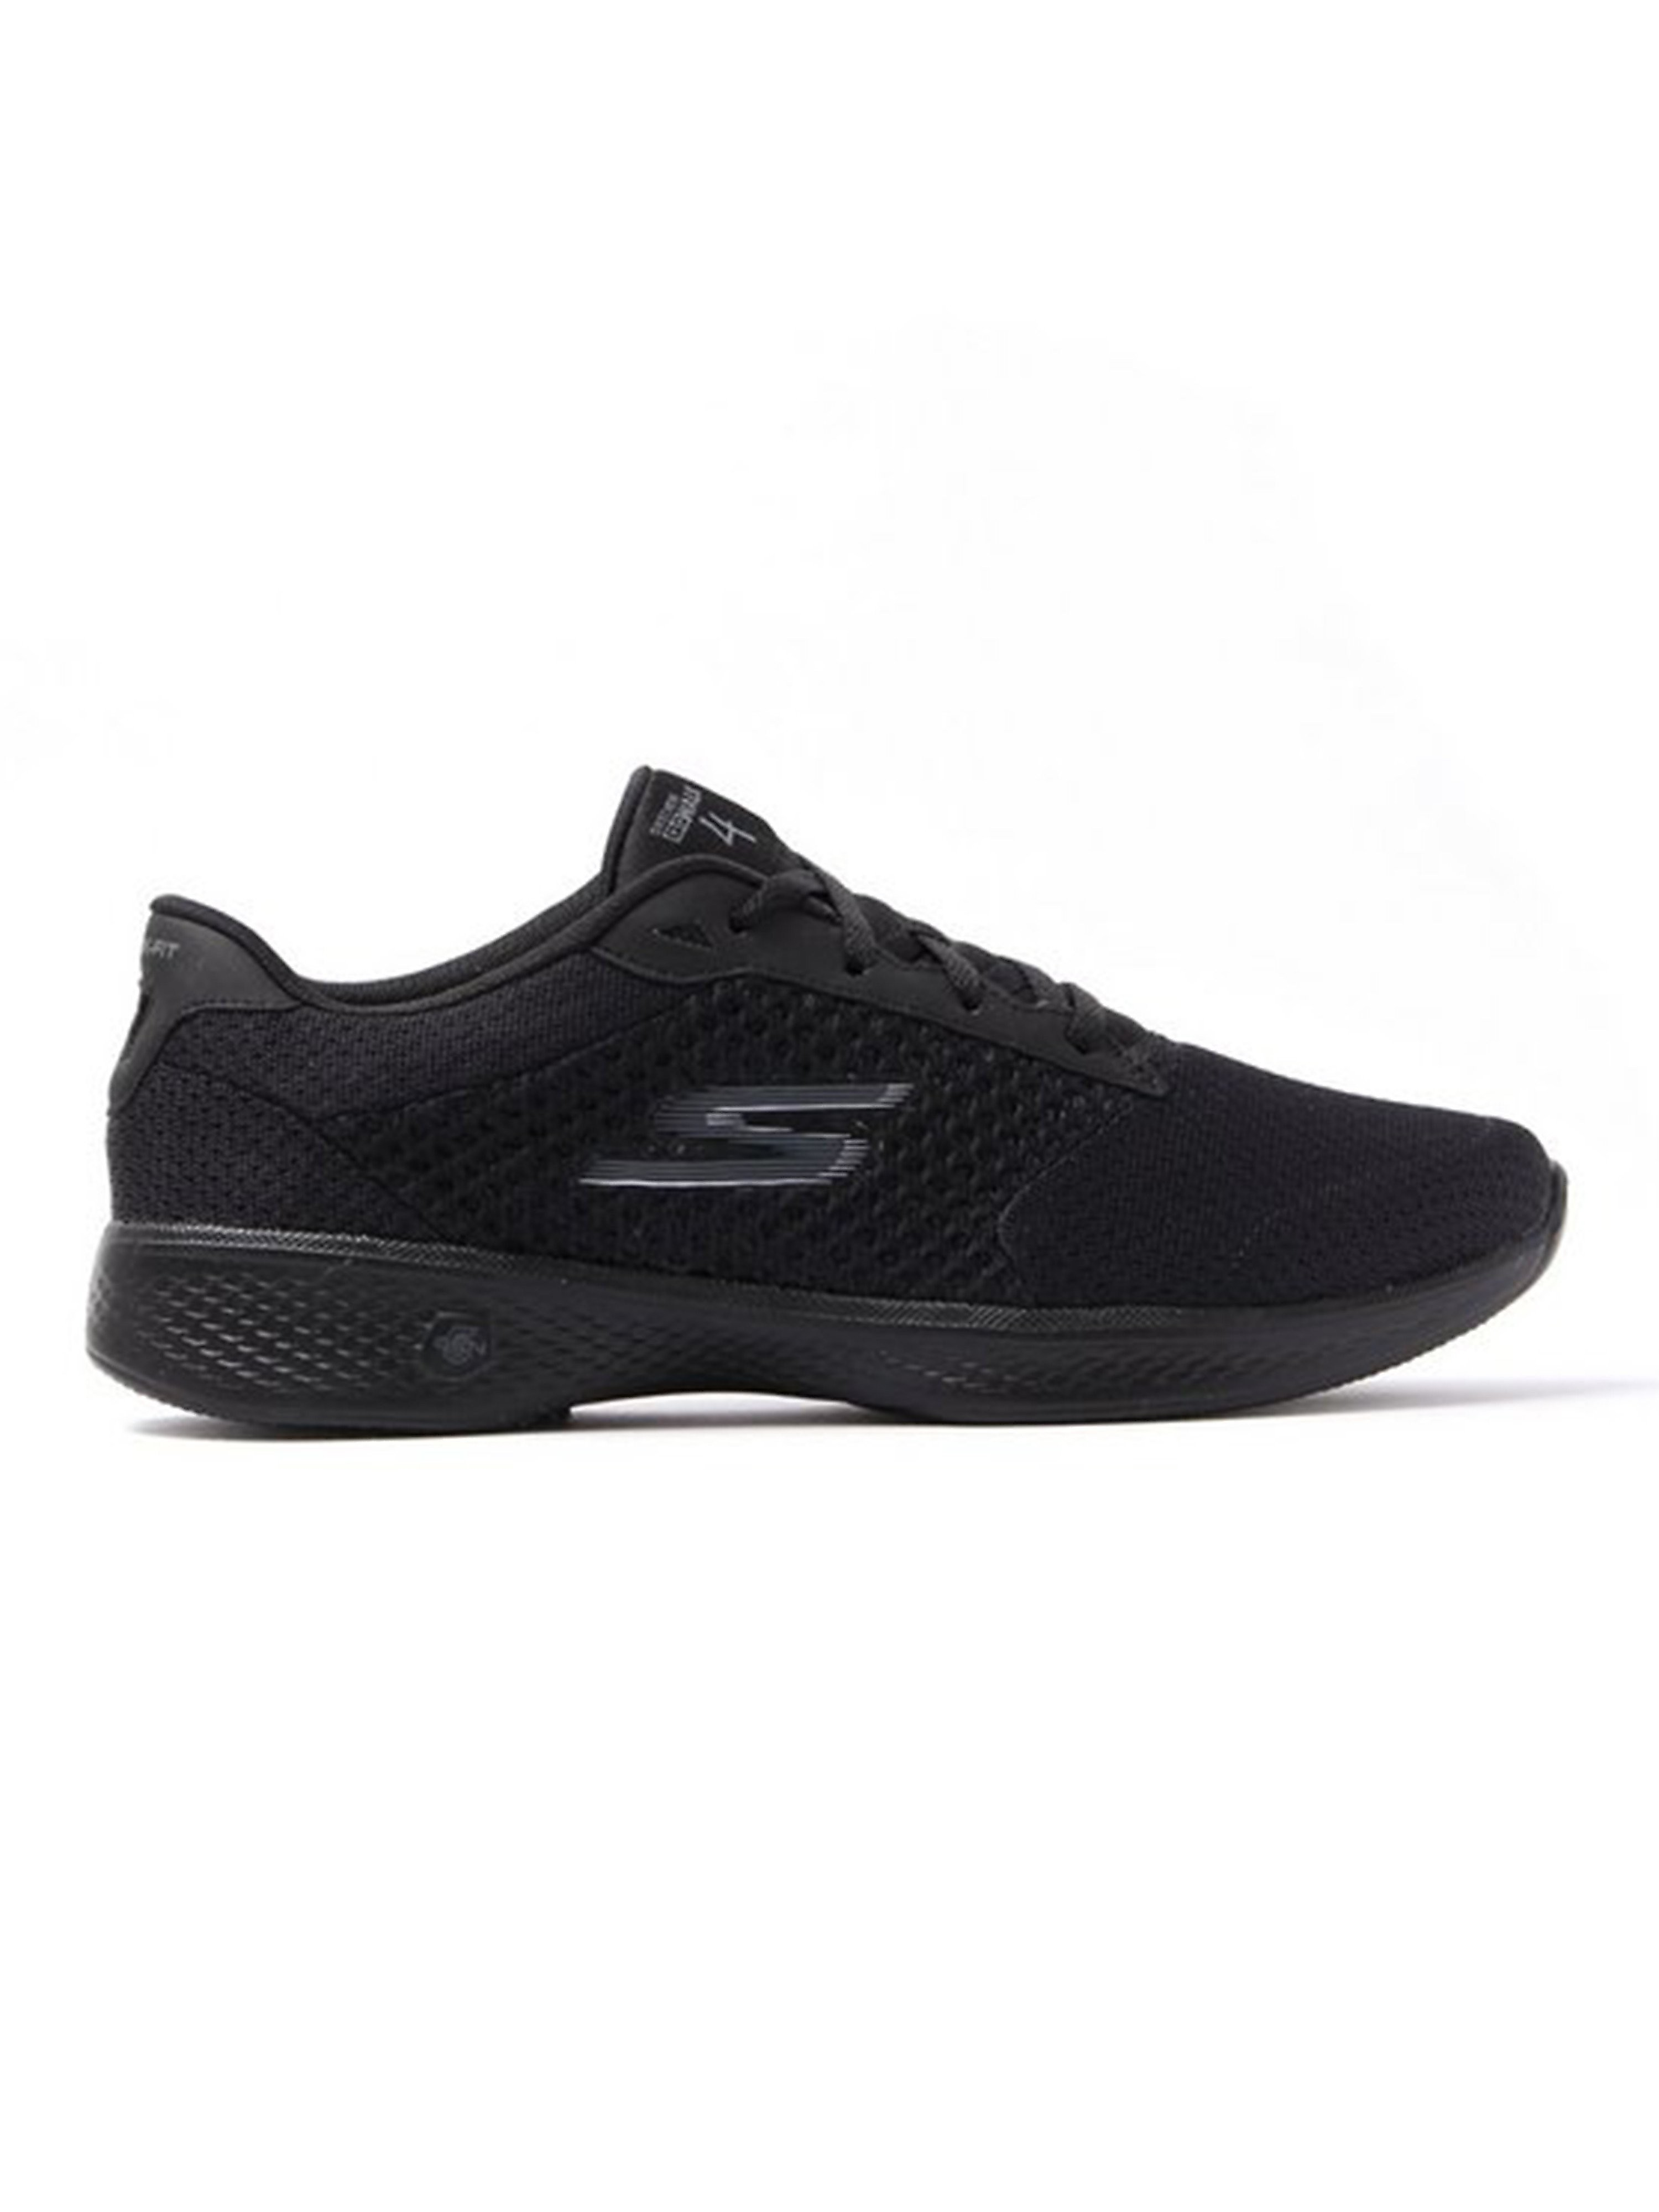 Skechers Womens's Go Walk 4 Exceed Trainers - Black